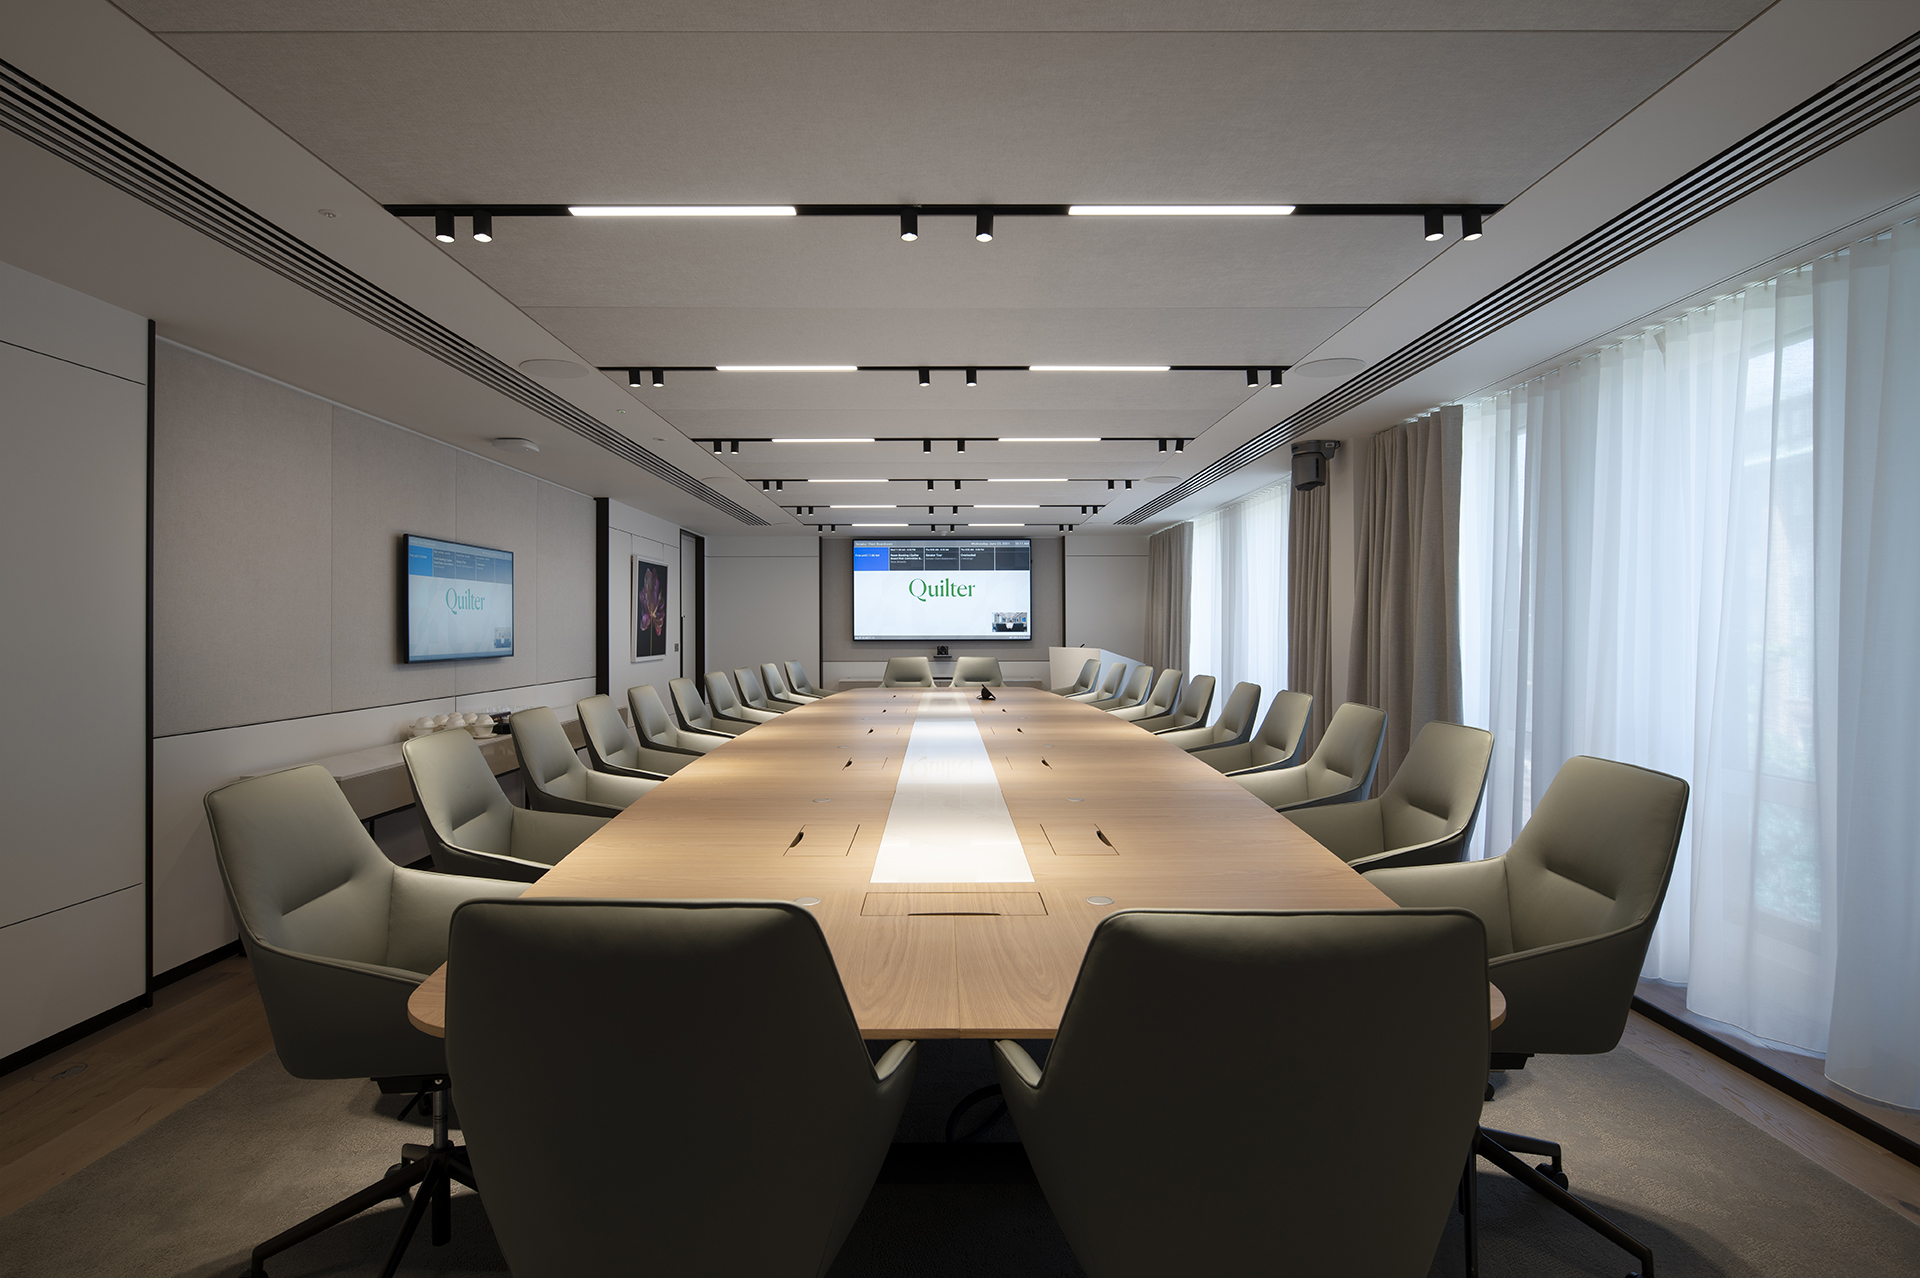 Quilter Board Room